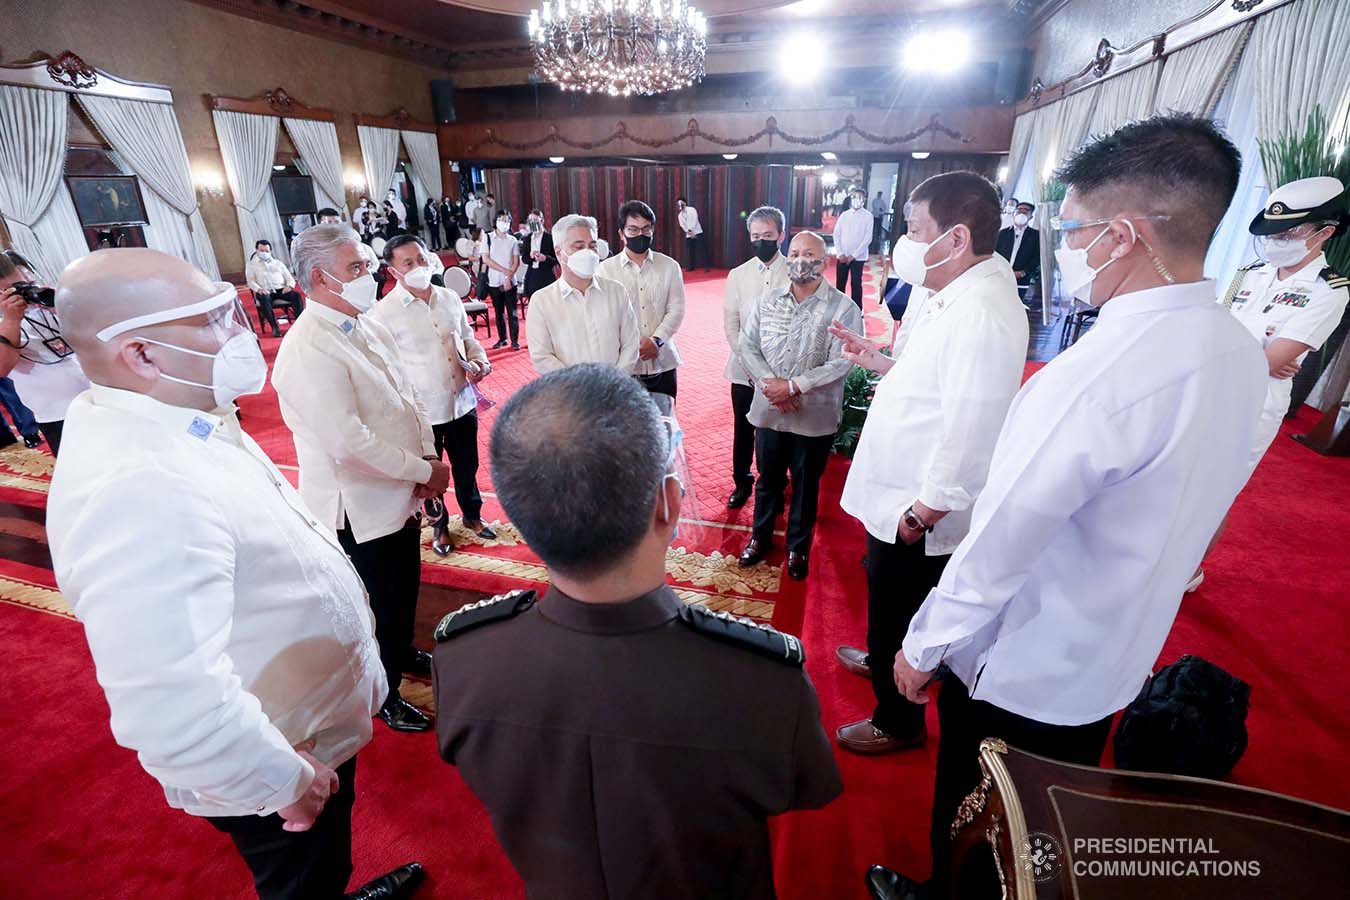 President Rodrigo Roa Duterte discusses matters with  legislators and officials from various agencies on the sidelines following the ceremonial re-enactment of the signing of bills at the Malacañang Palace on June 16, 2021. TOTO LOZANO/ PRESIDENTIAL PHOTO